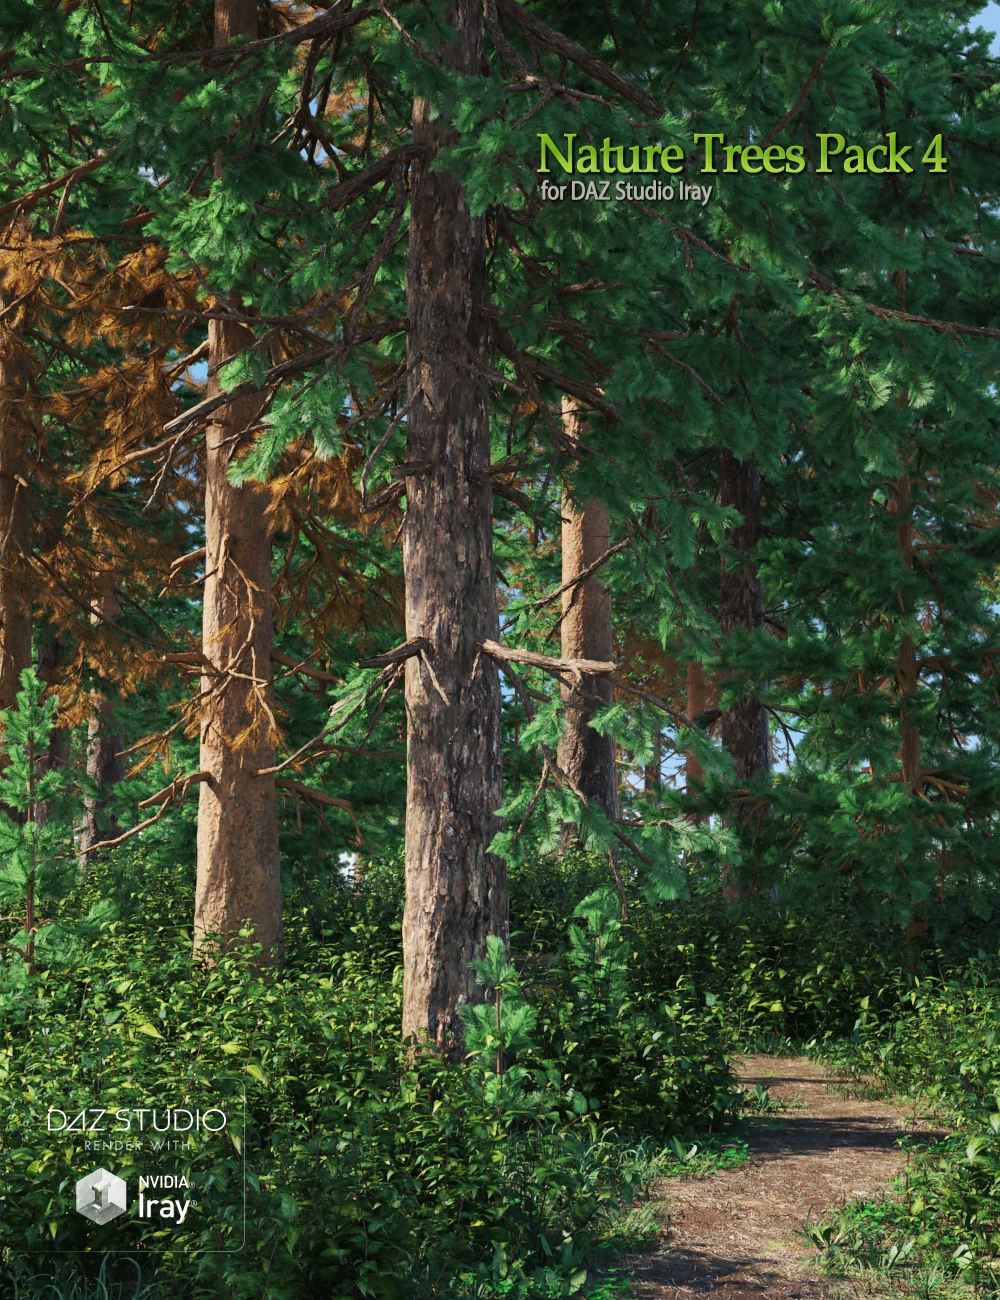 Nature Trees Pack 4 by: Andrey Pestryakov, 3D Models by Daz 3D